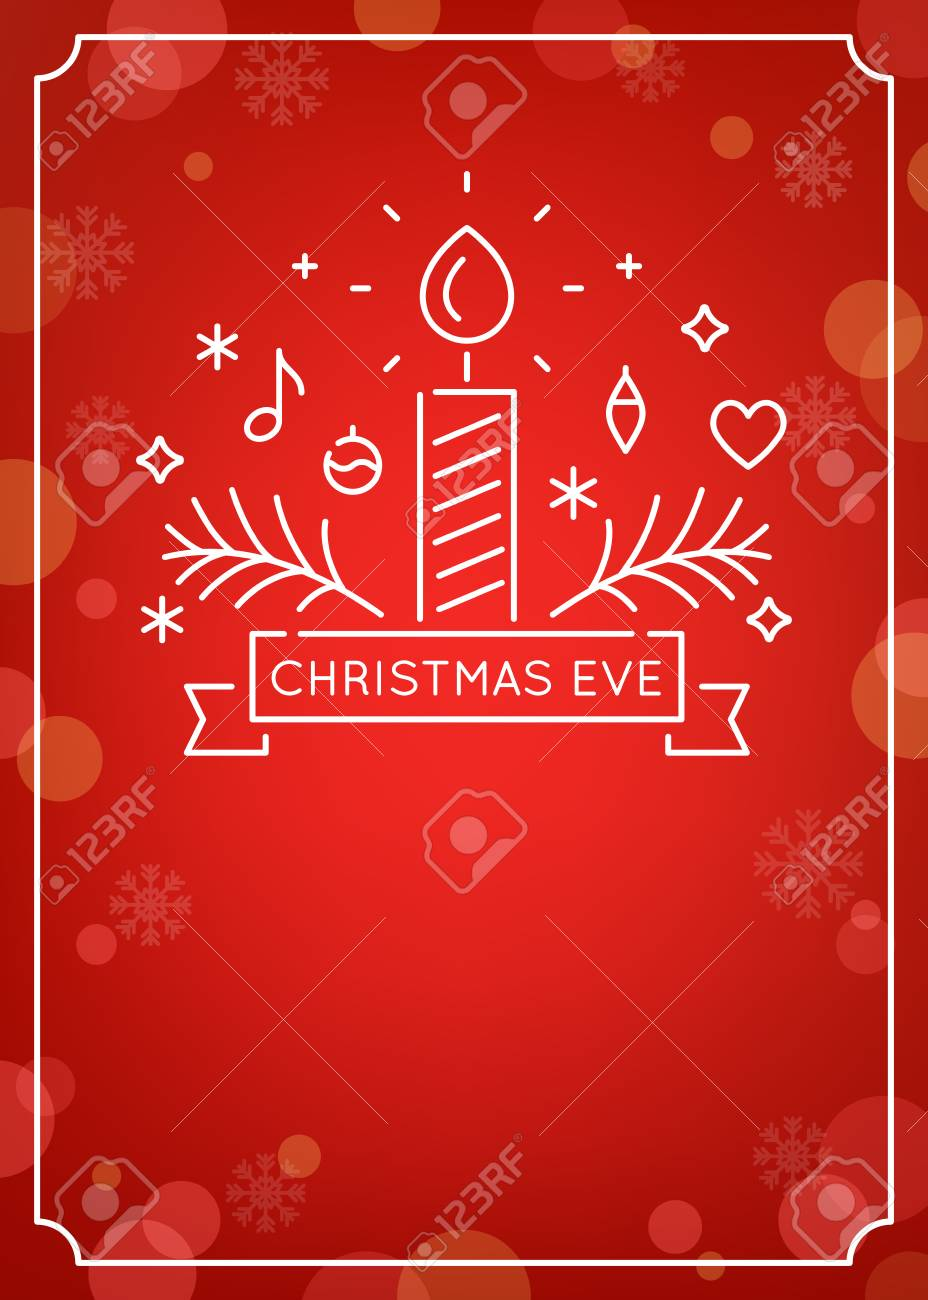 Candle And Ornaments Outline Christmas Eve Candlelight Service Royalty Free Cliparts Vectors And Stock Illustration Image 110428190